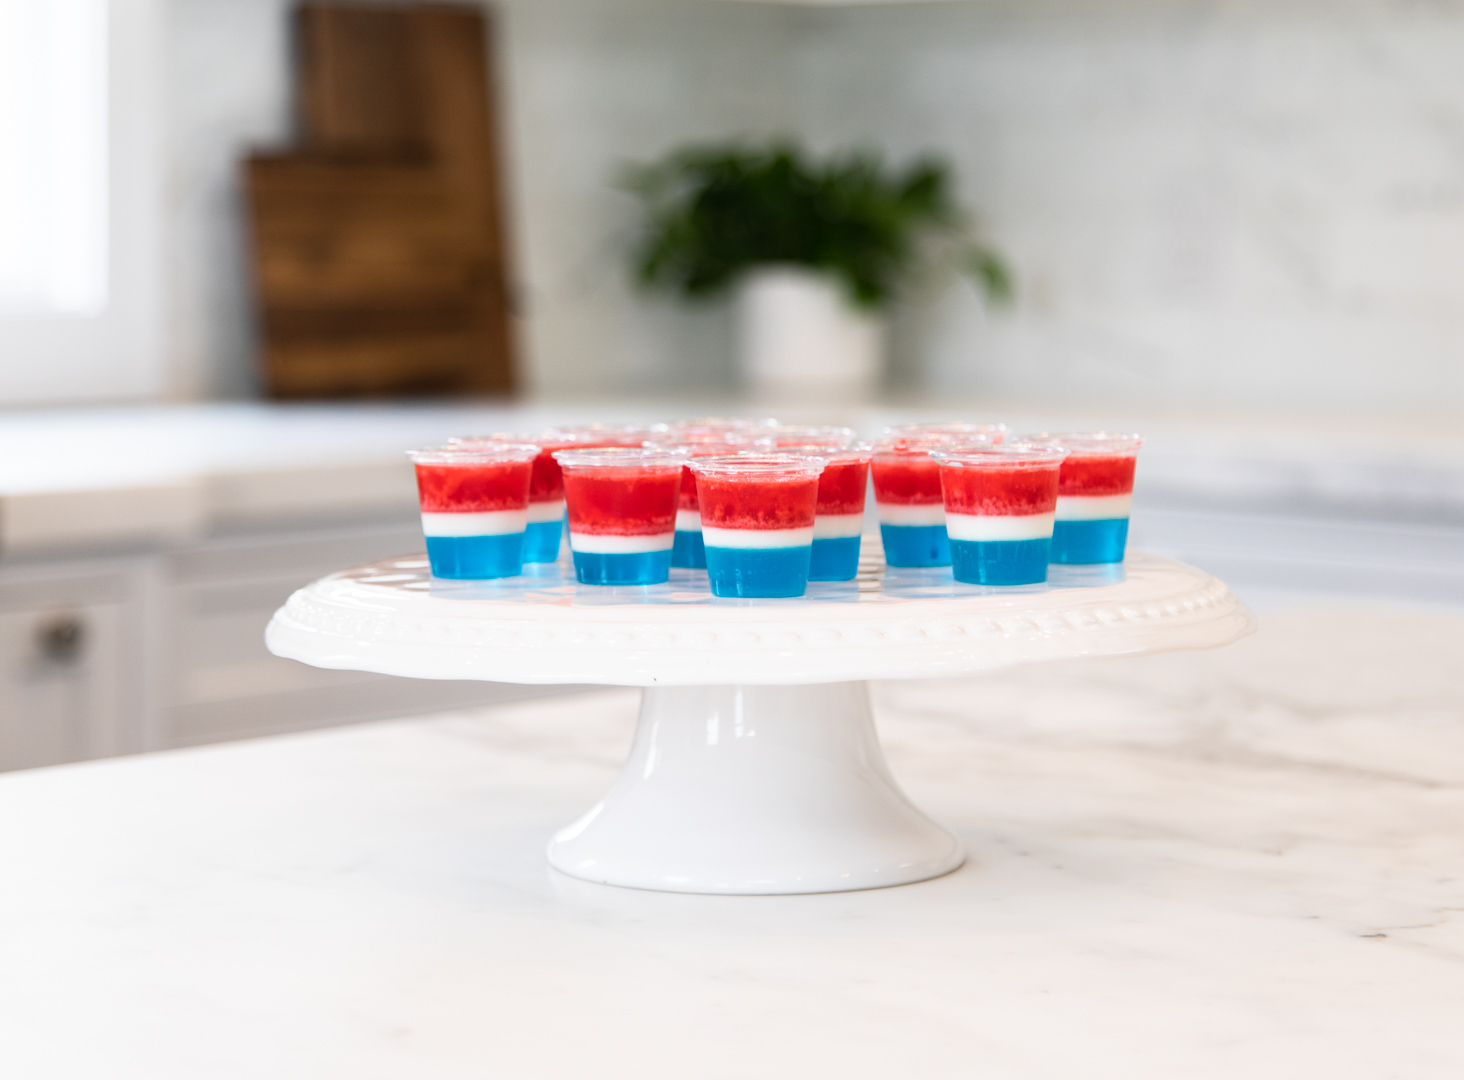 July 4th Jell-o Shot Recipe